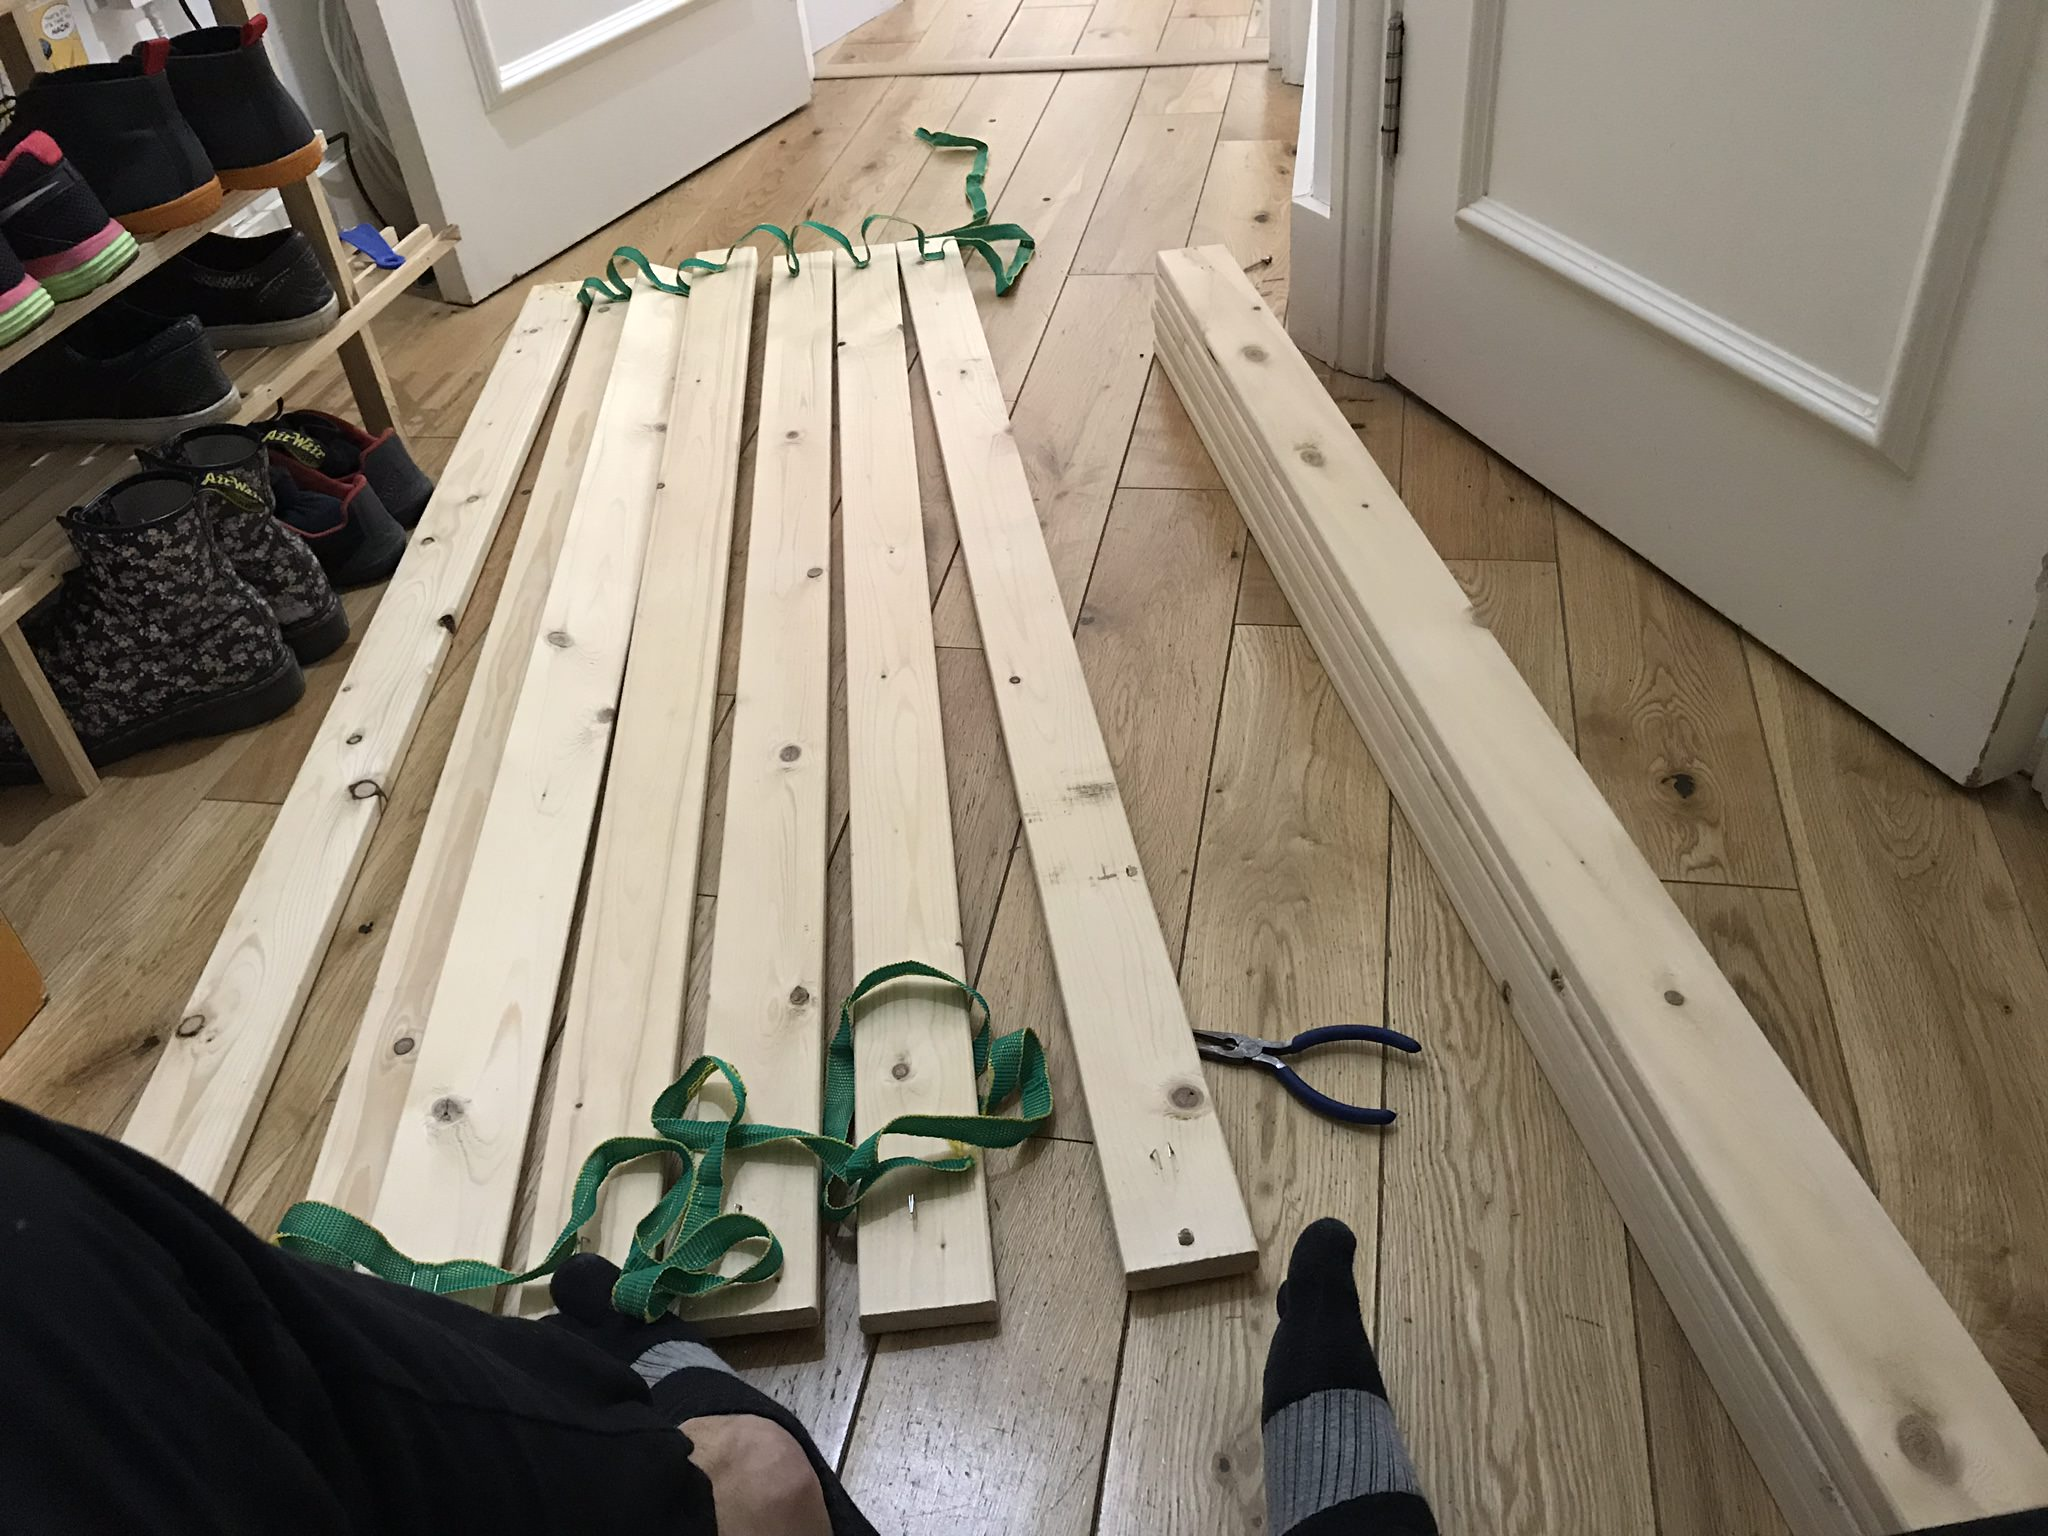 Future top of the table was part of the bed frame